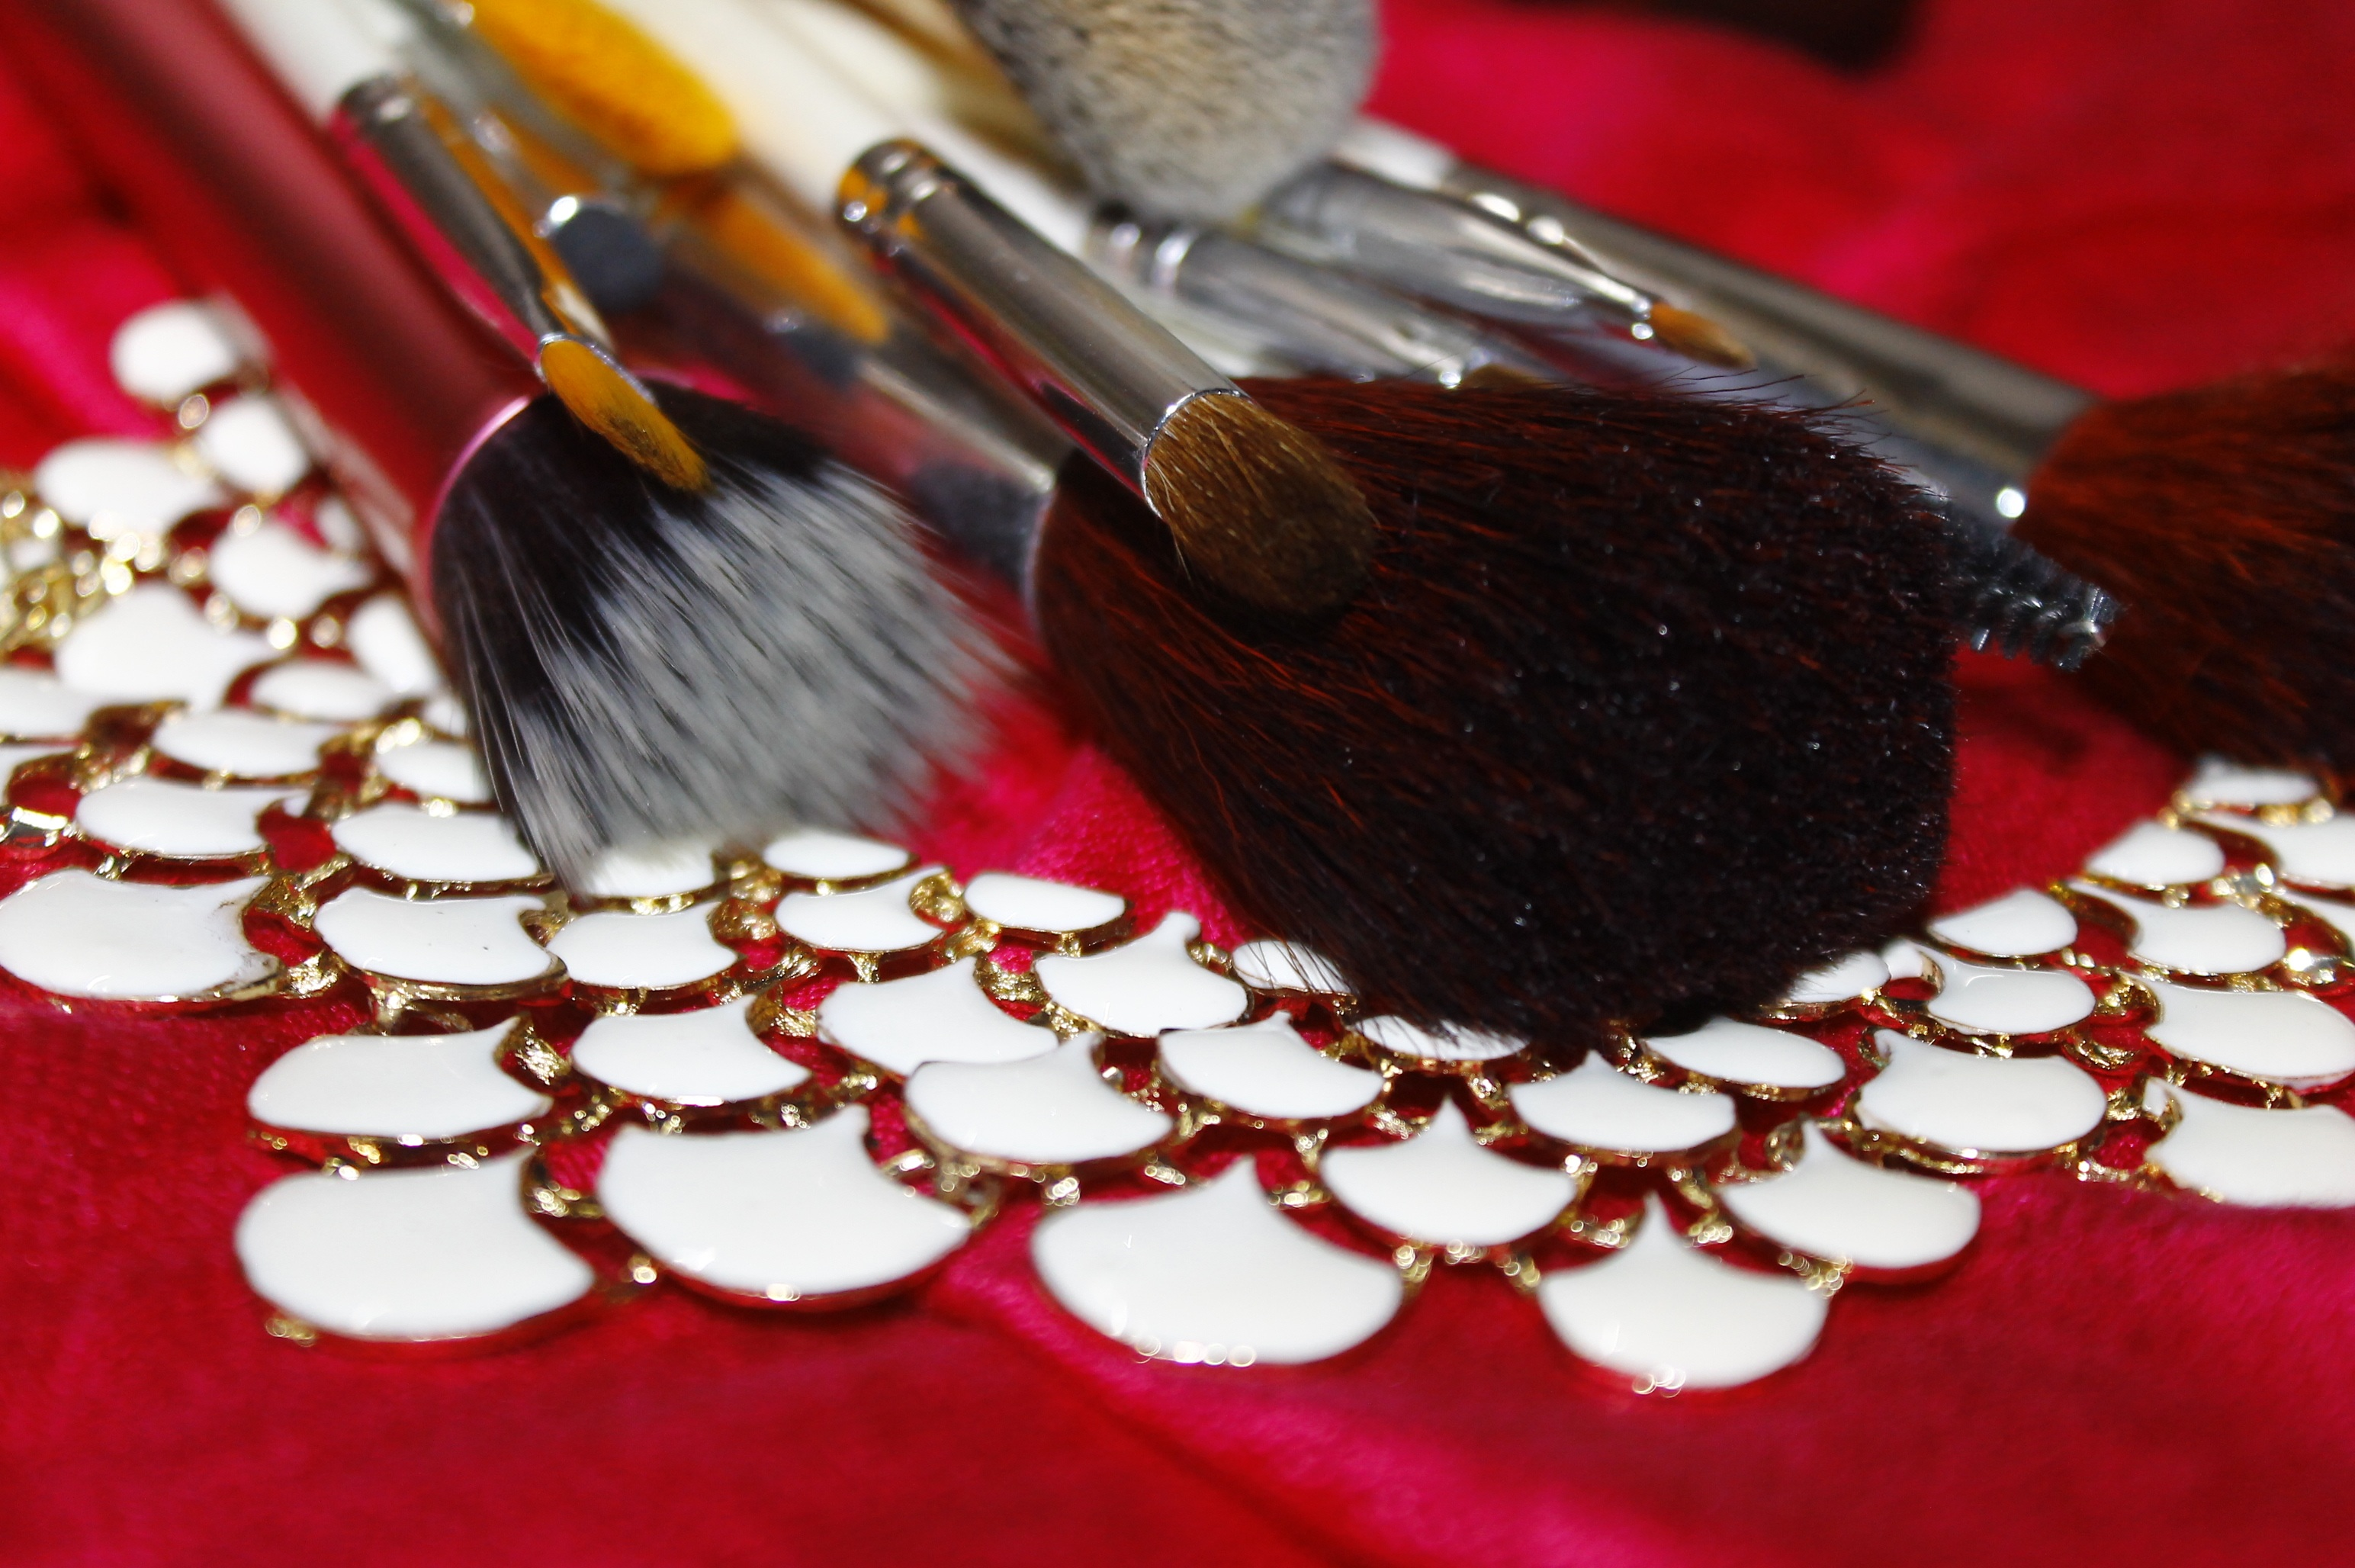 slide /fotky70827/slider/makeup-brush-548178.jpg